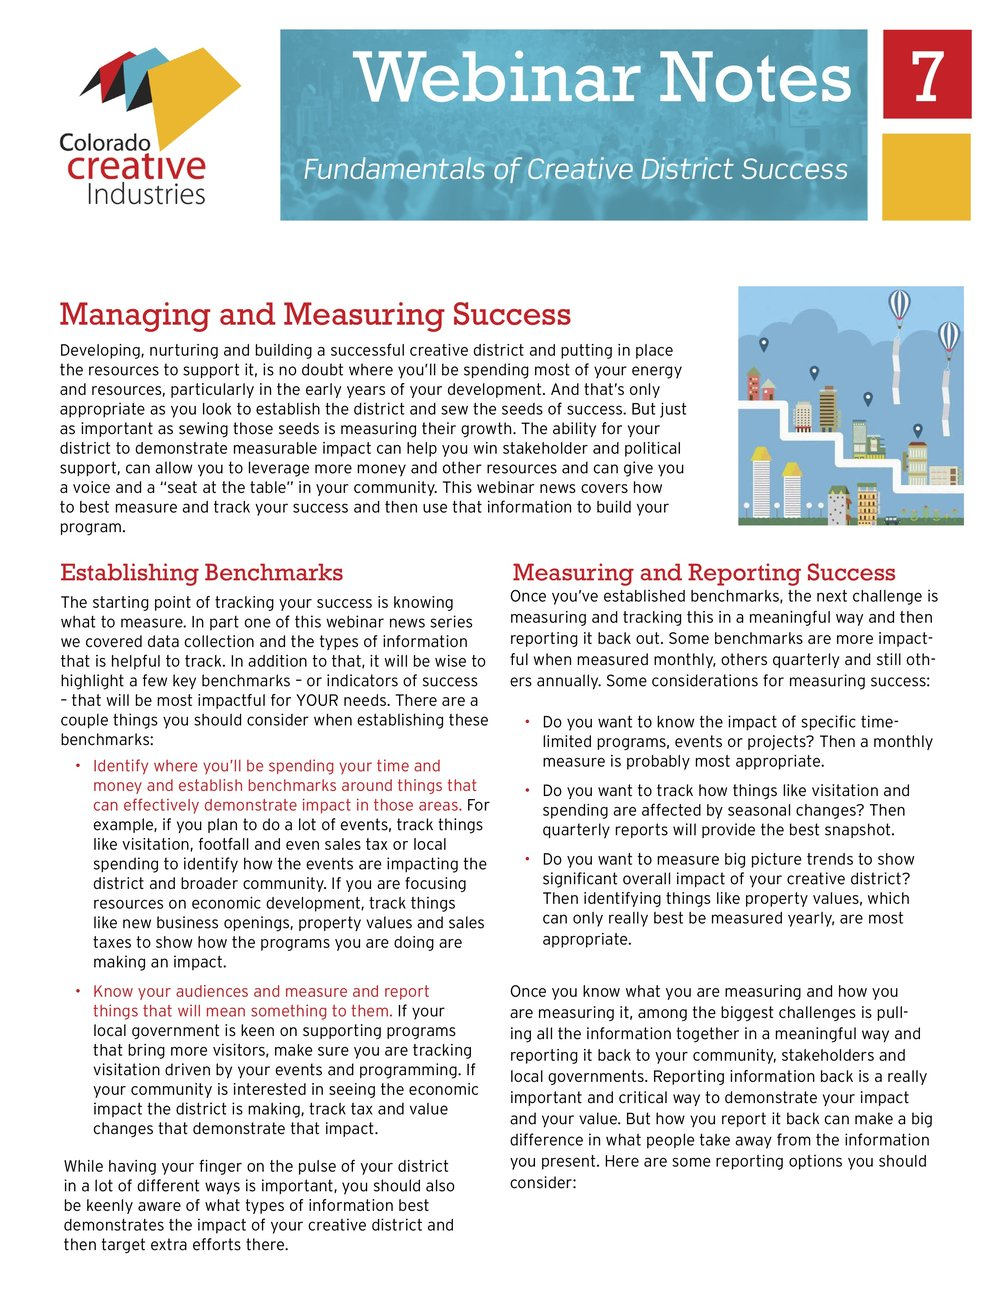 Managing and Measuring Success -